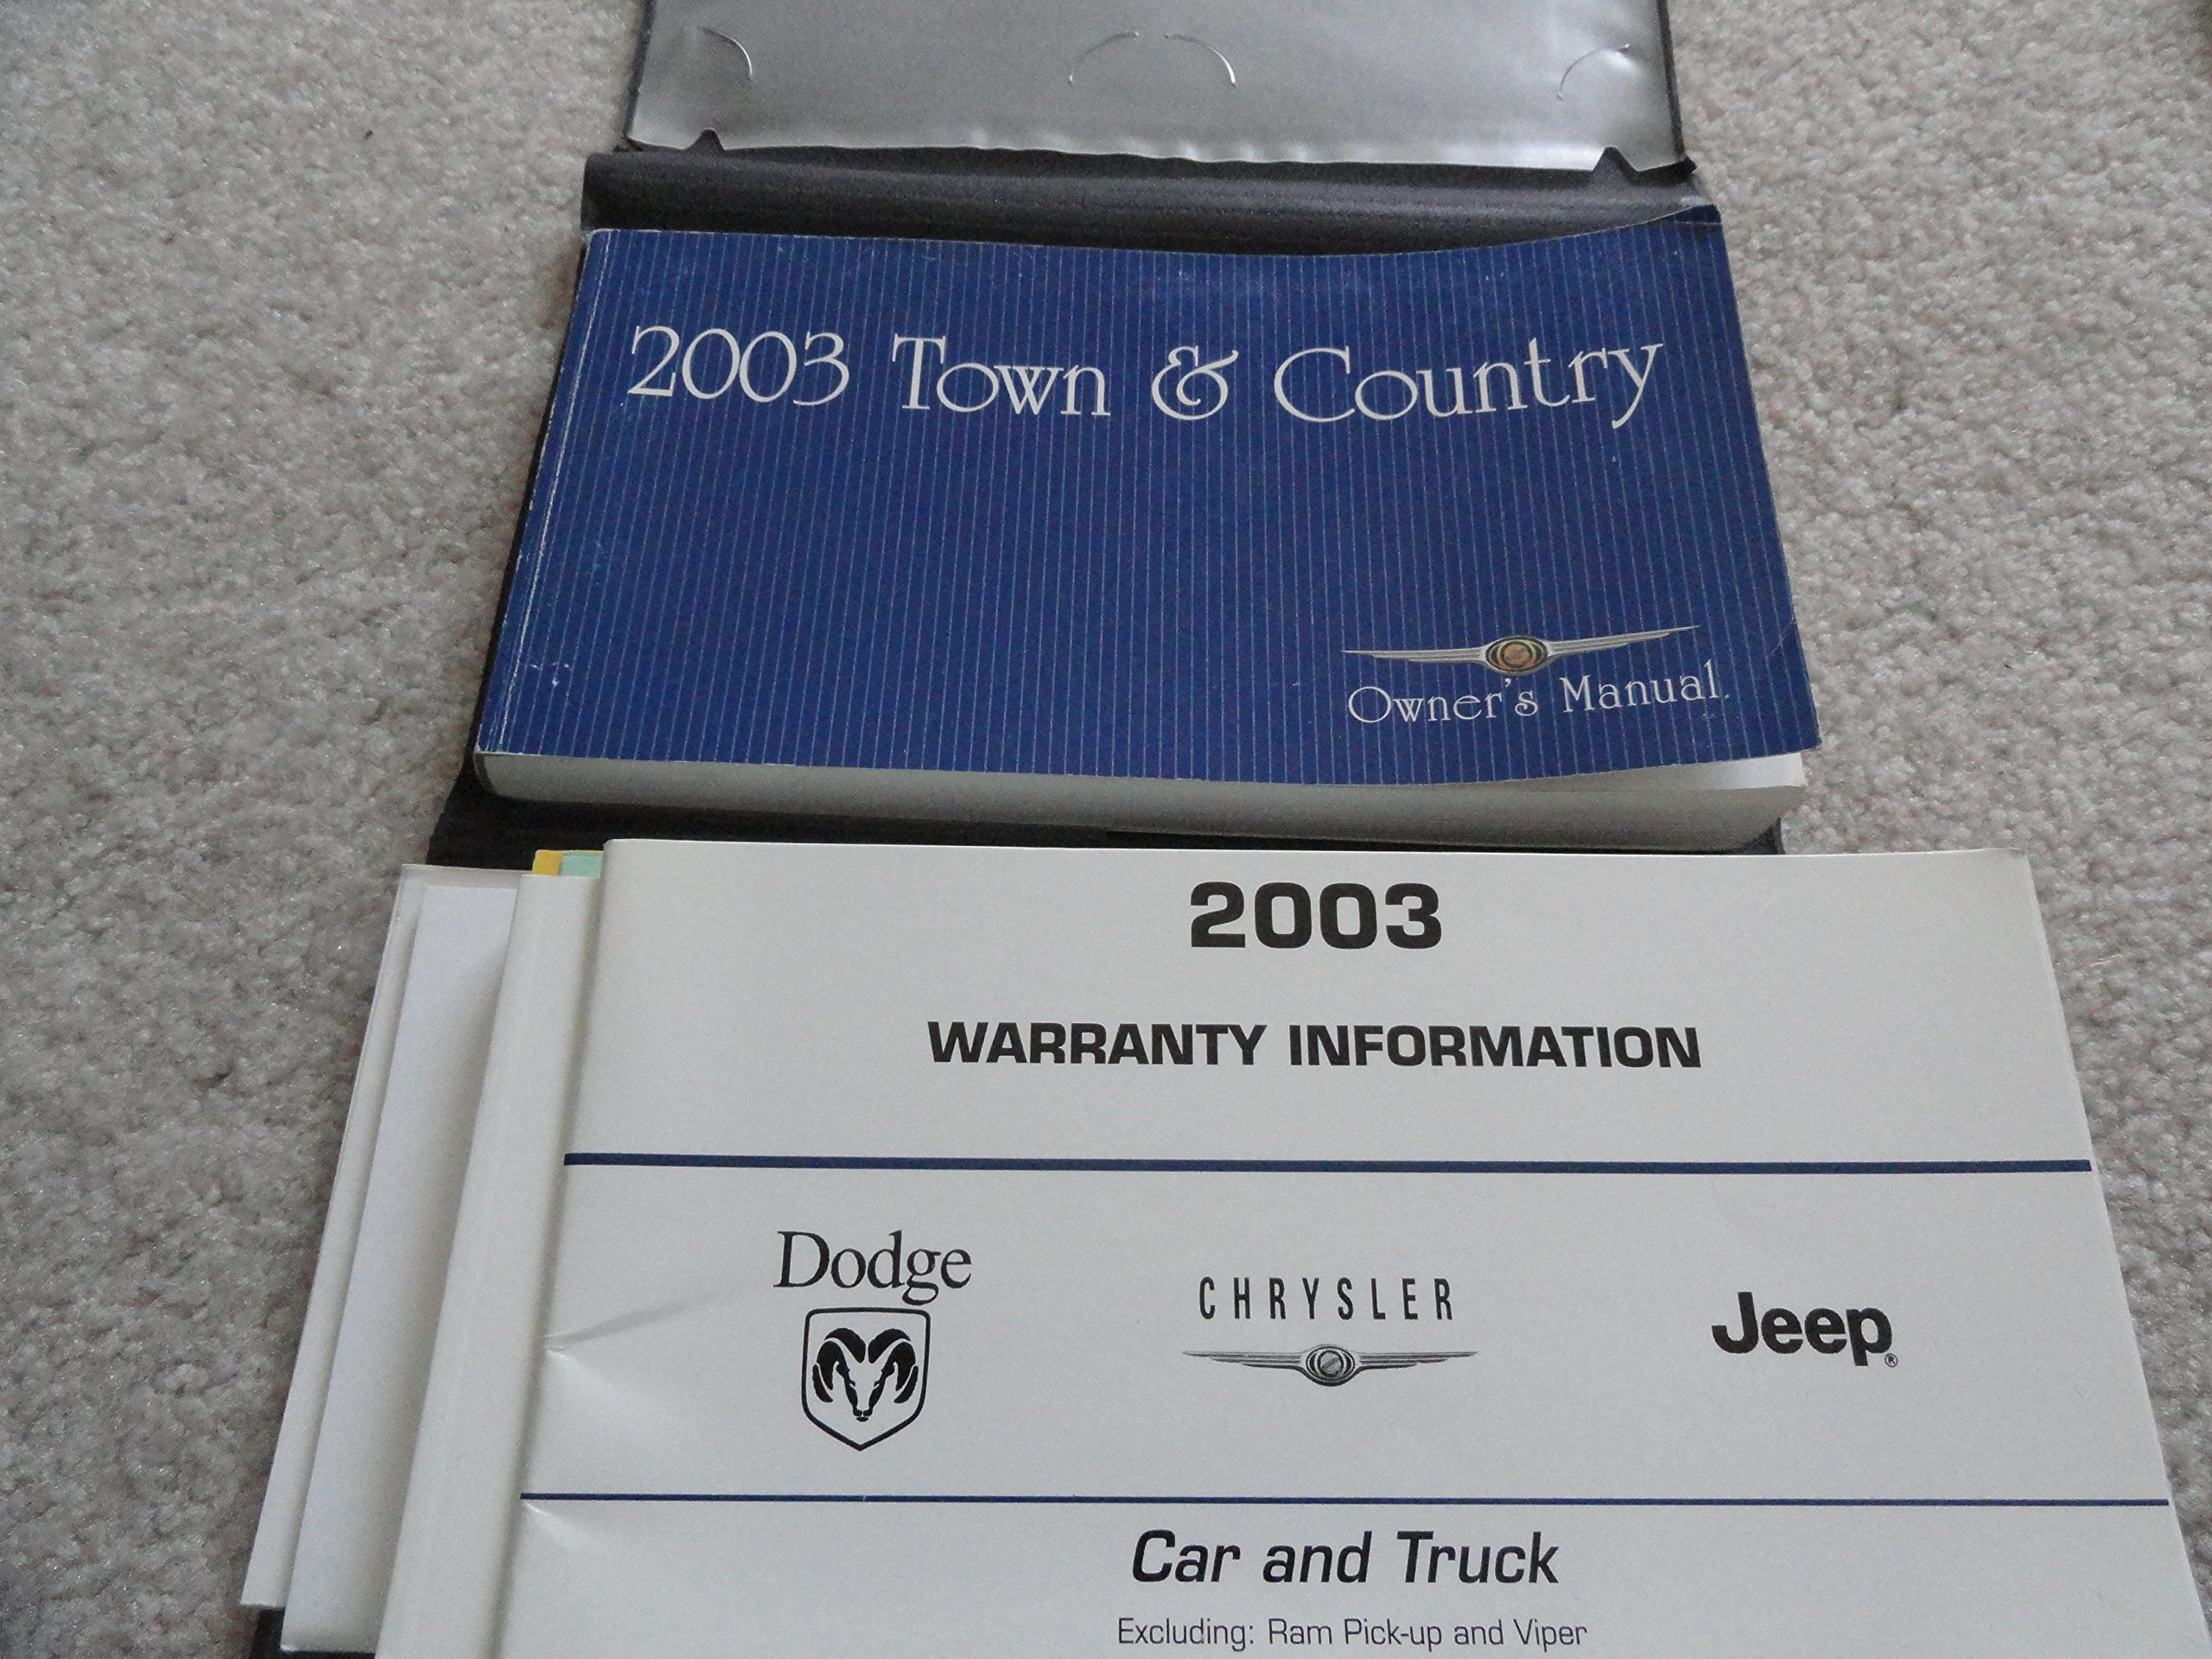 2003 Chrysler Town and Country Owners Manual: Chrysler: Amazon.com: Books